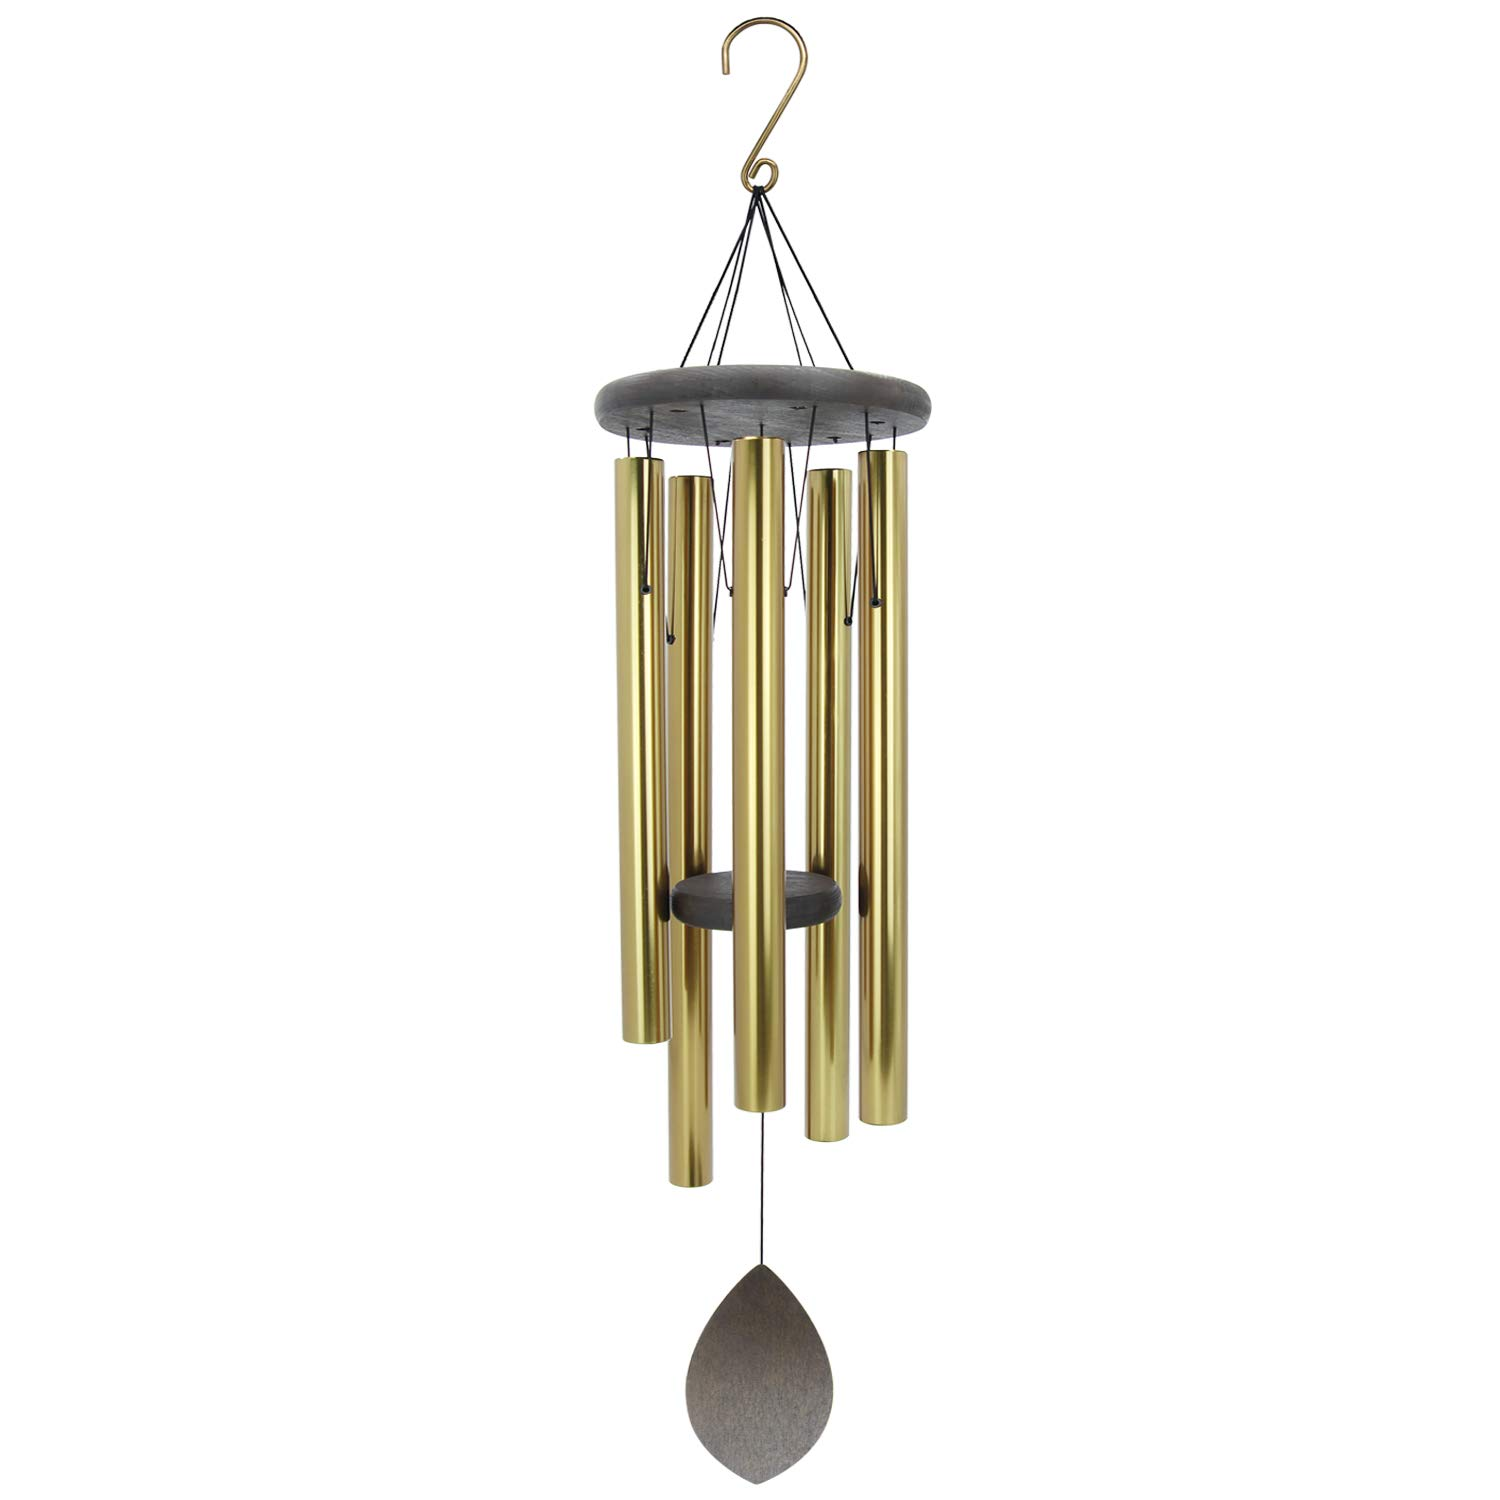 """ASTARIN Pentatonic Wind Chimes with Deep Sounding,36""""Large Windchime Amazing Grace with 5 Metal Tubes,Deep Tone Wind Chimes Large for Garden Home Hanging Decor,Memorial Wind Bell for Sympathy,Gold"""